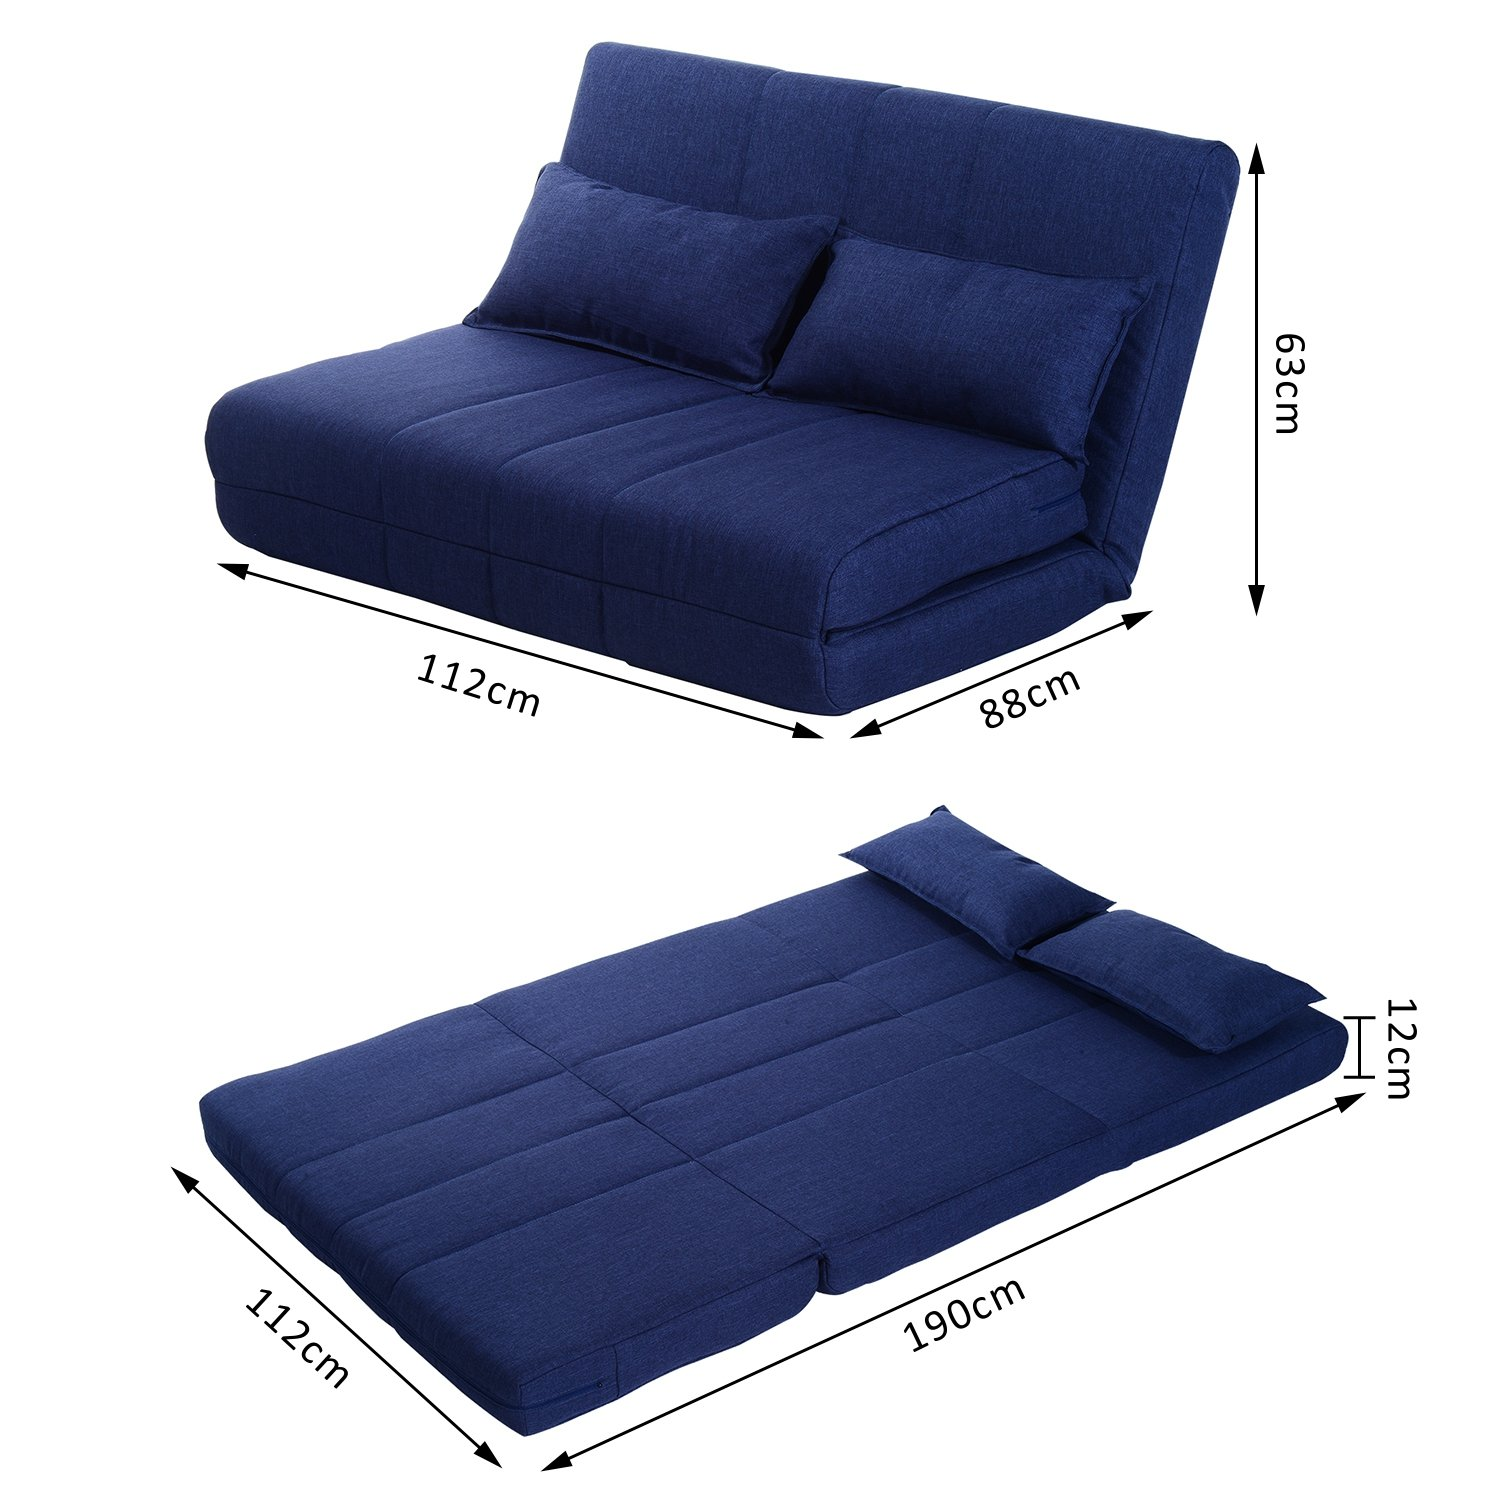 examples inch guthrie the den kitchen loveseat navy best mozaic size amazon of wolfchase picture small com porch mattress futon ideas full